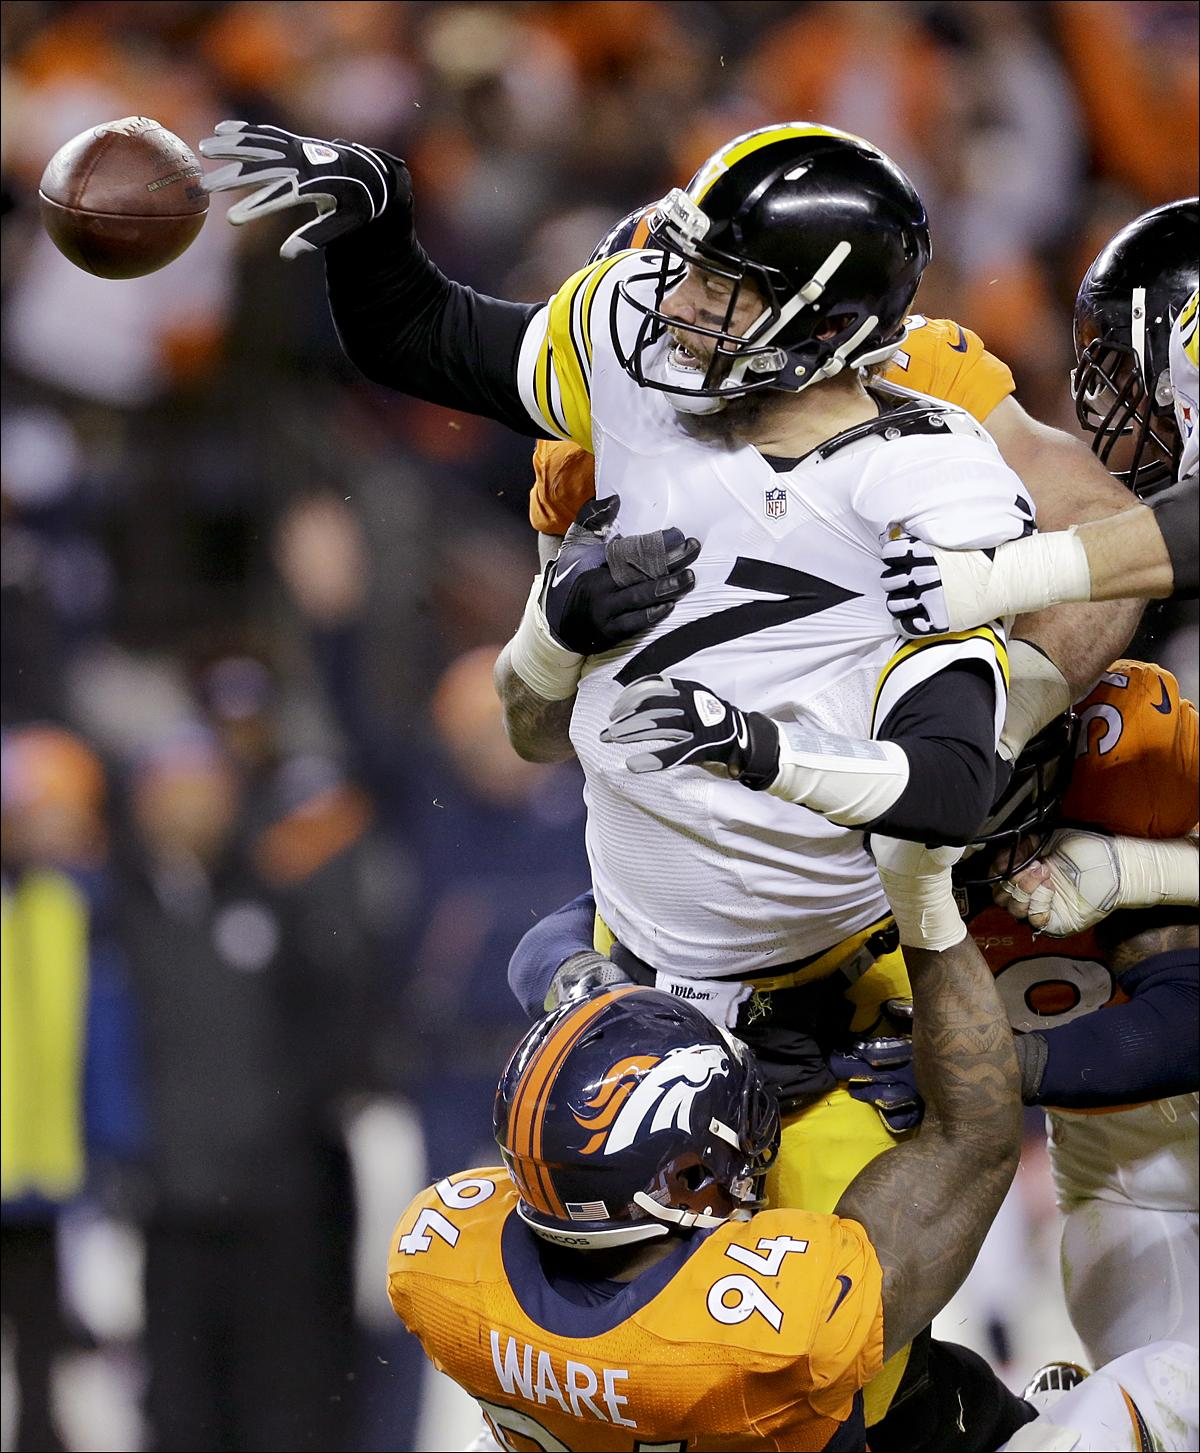 Pittsburgh Steelers quarterback Ben Roethlisberger, top, is sacked by Denver Broncos outside linebacker DeMarcus Ware, below, during the second half in an NFL football divisional playoff game, Sunday, Jan. 17, 2016, in Denver. (AP Photo/Joe Mahoney)